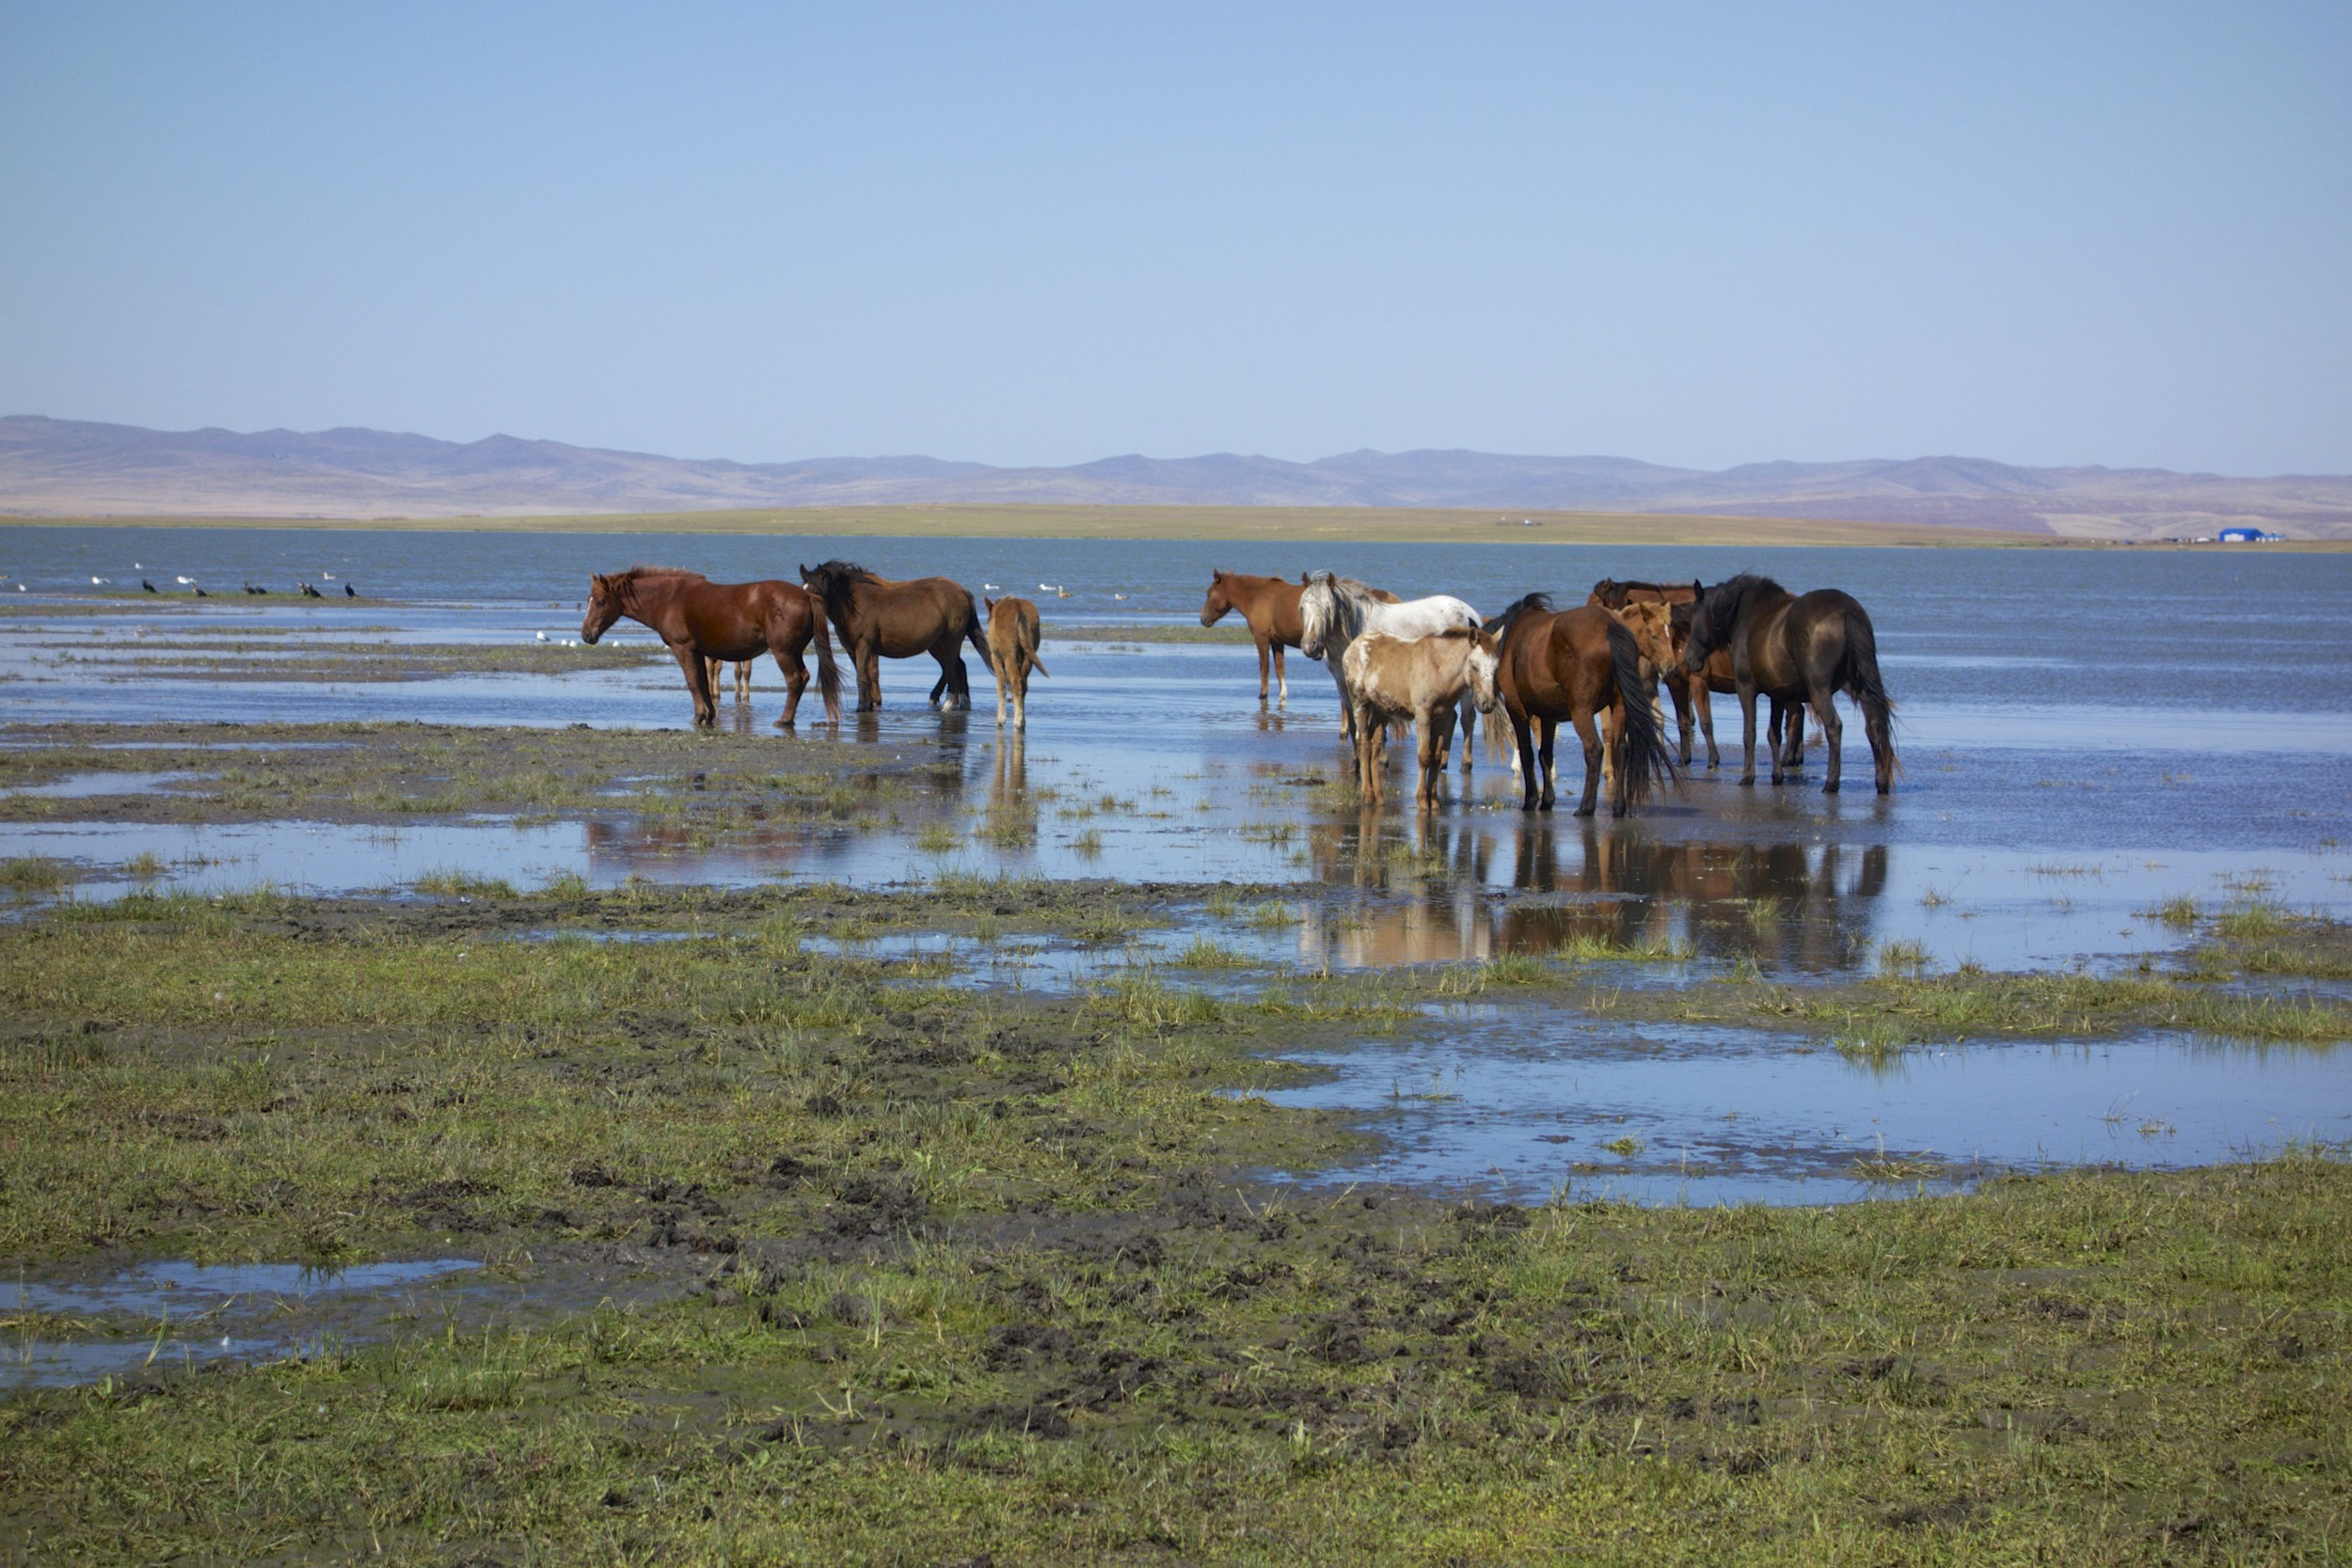 Mongolian grasslands and swamps.